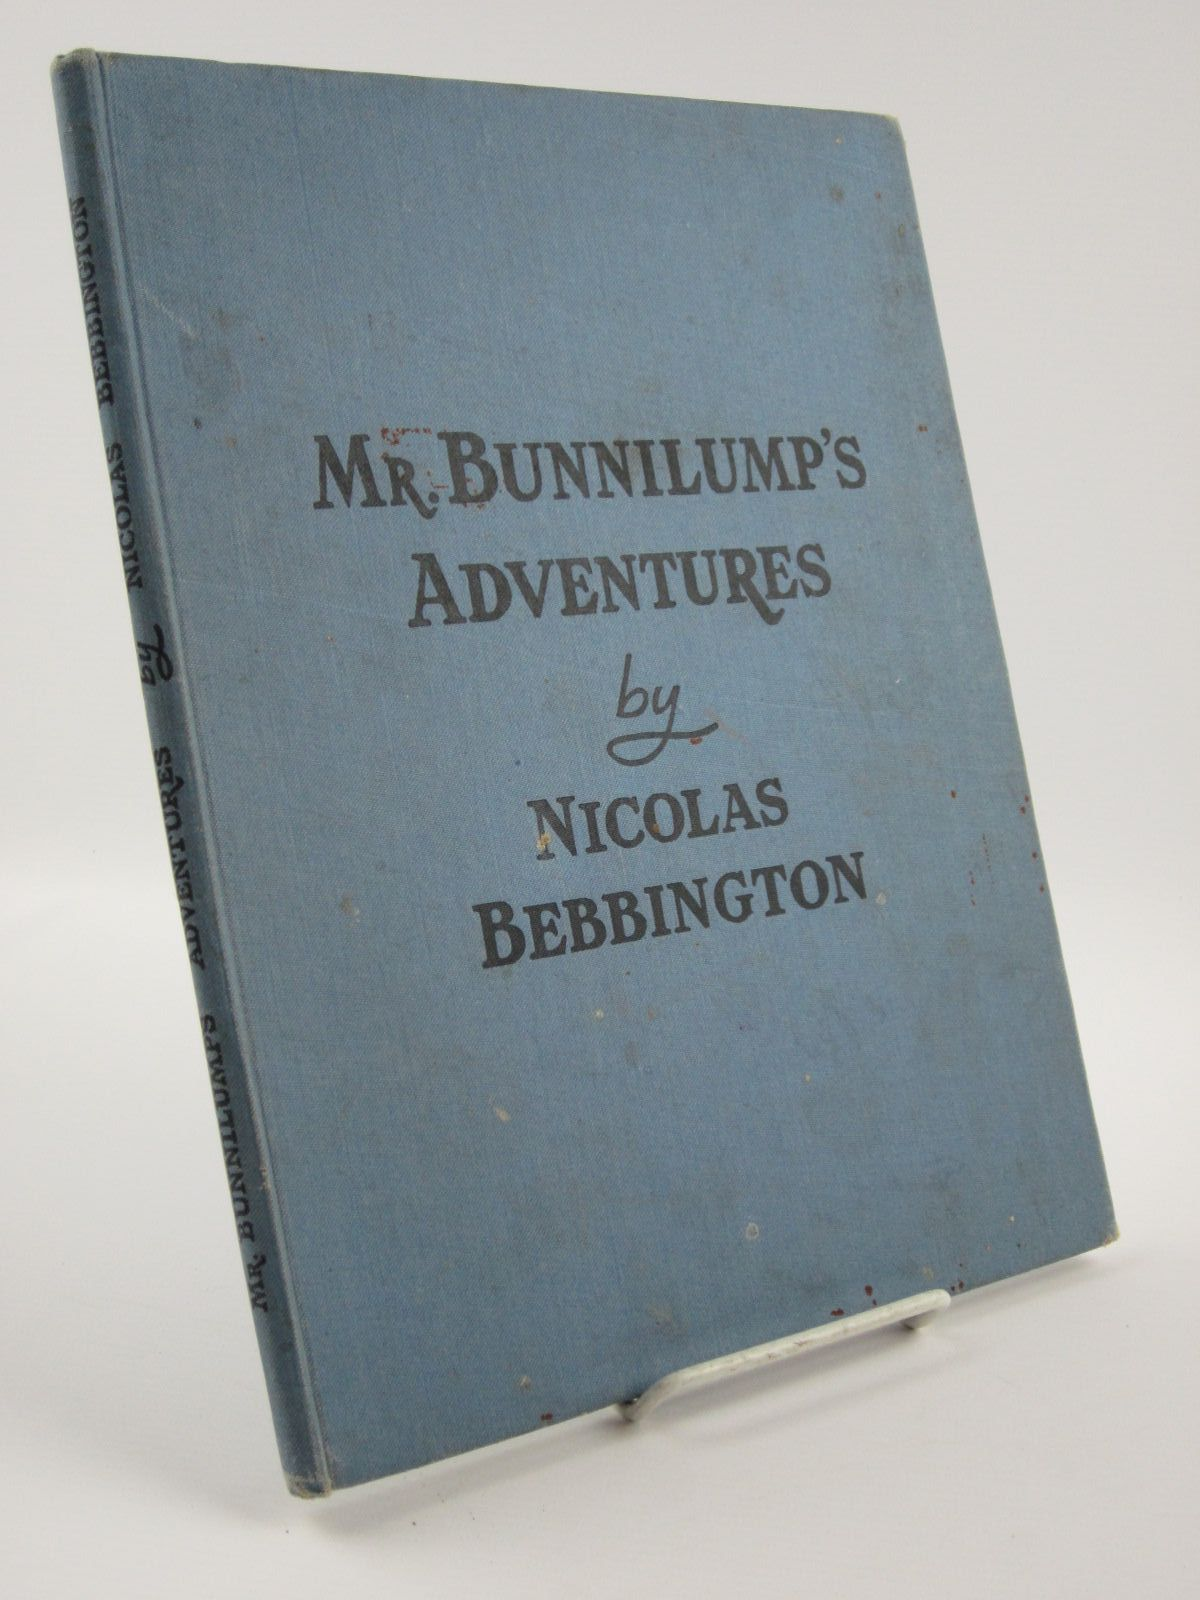 Photo of MR. BUNNILUMP'S ADVENTURES written by Bebbington, Nicolas illustrated by Turvey, Rosalind M. published by Marcus Harris & Lewis Ltd. (STOCK CODE: 1309708)  for sale by Stella & Rose's Books